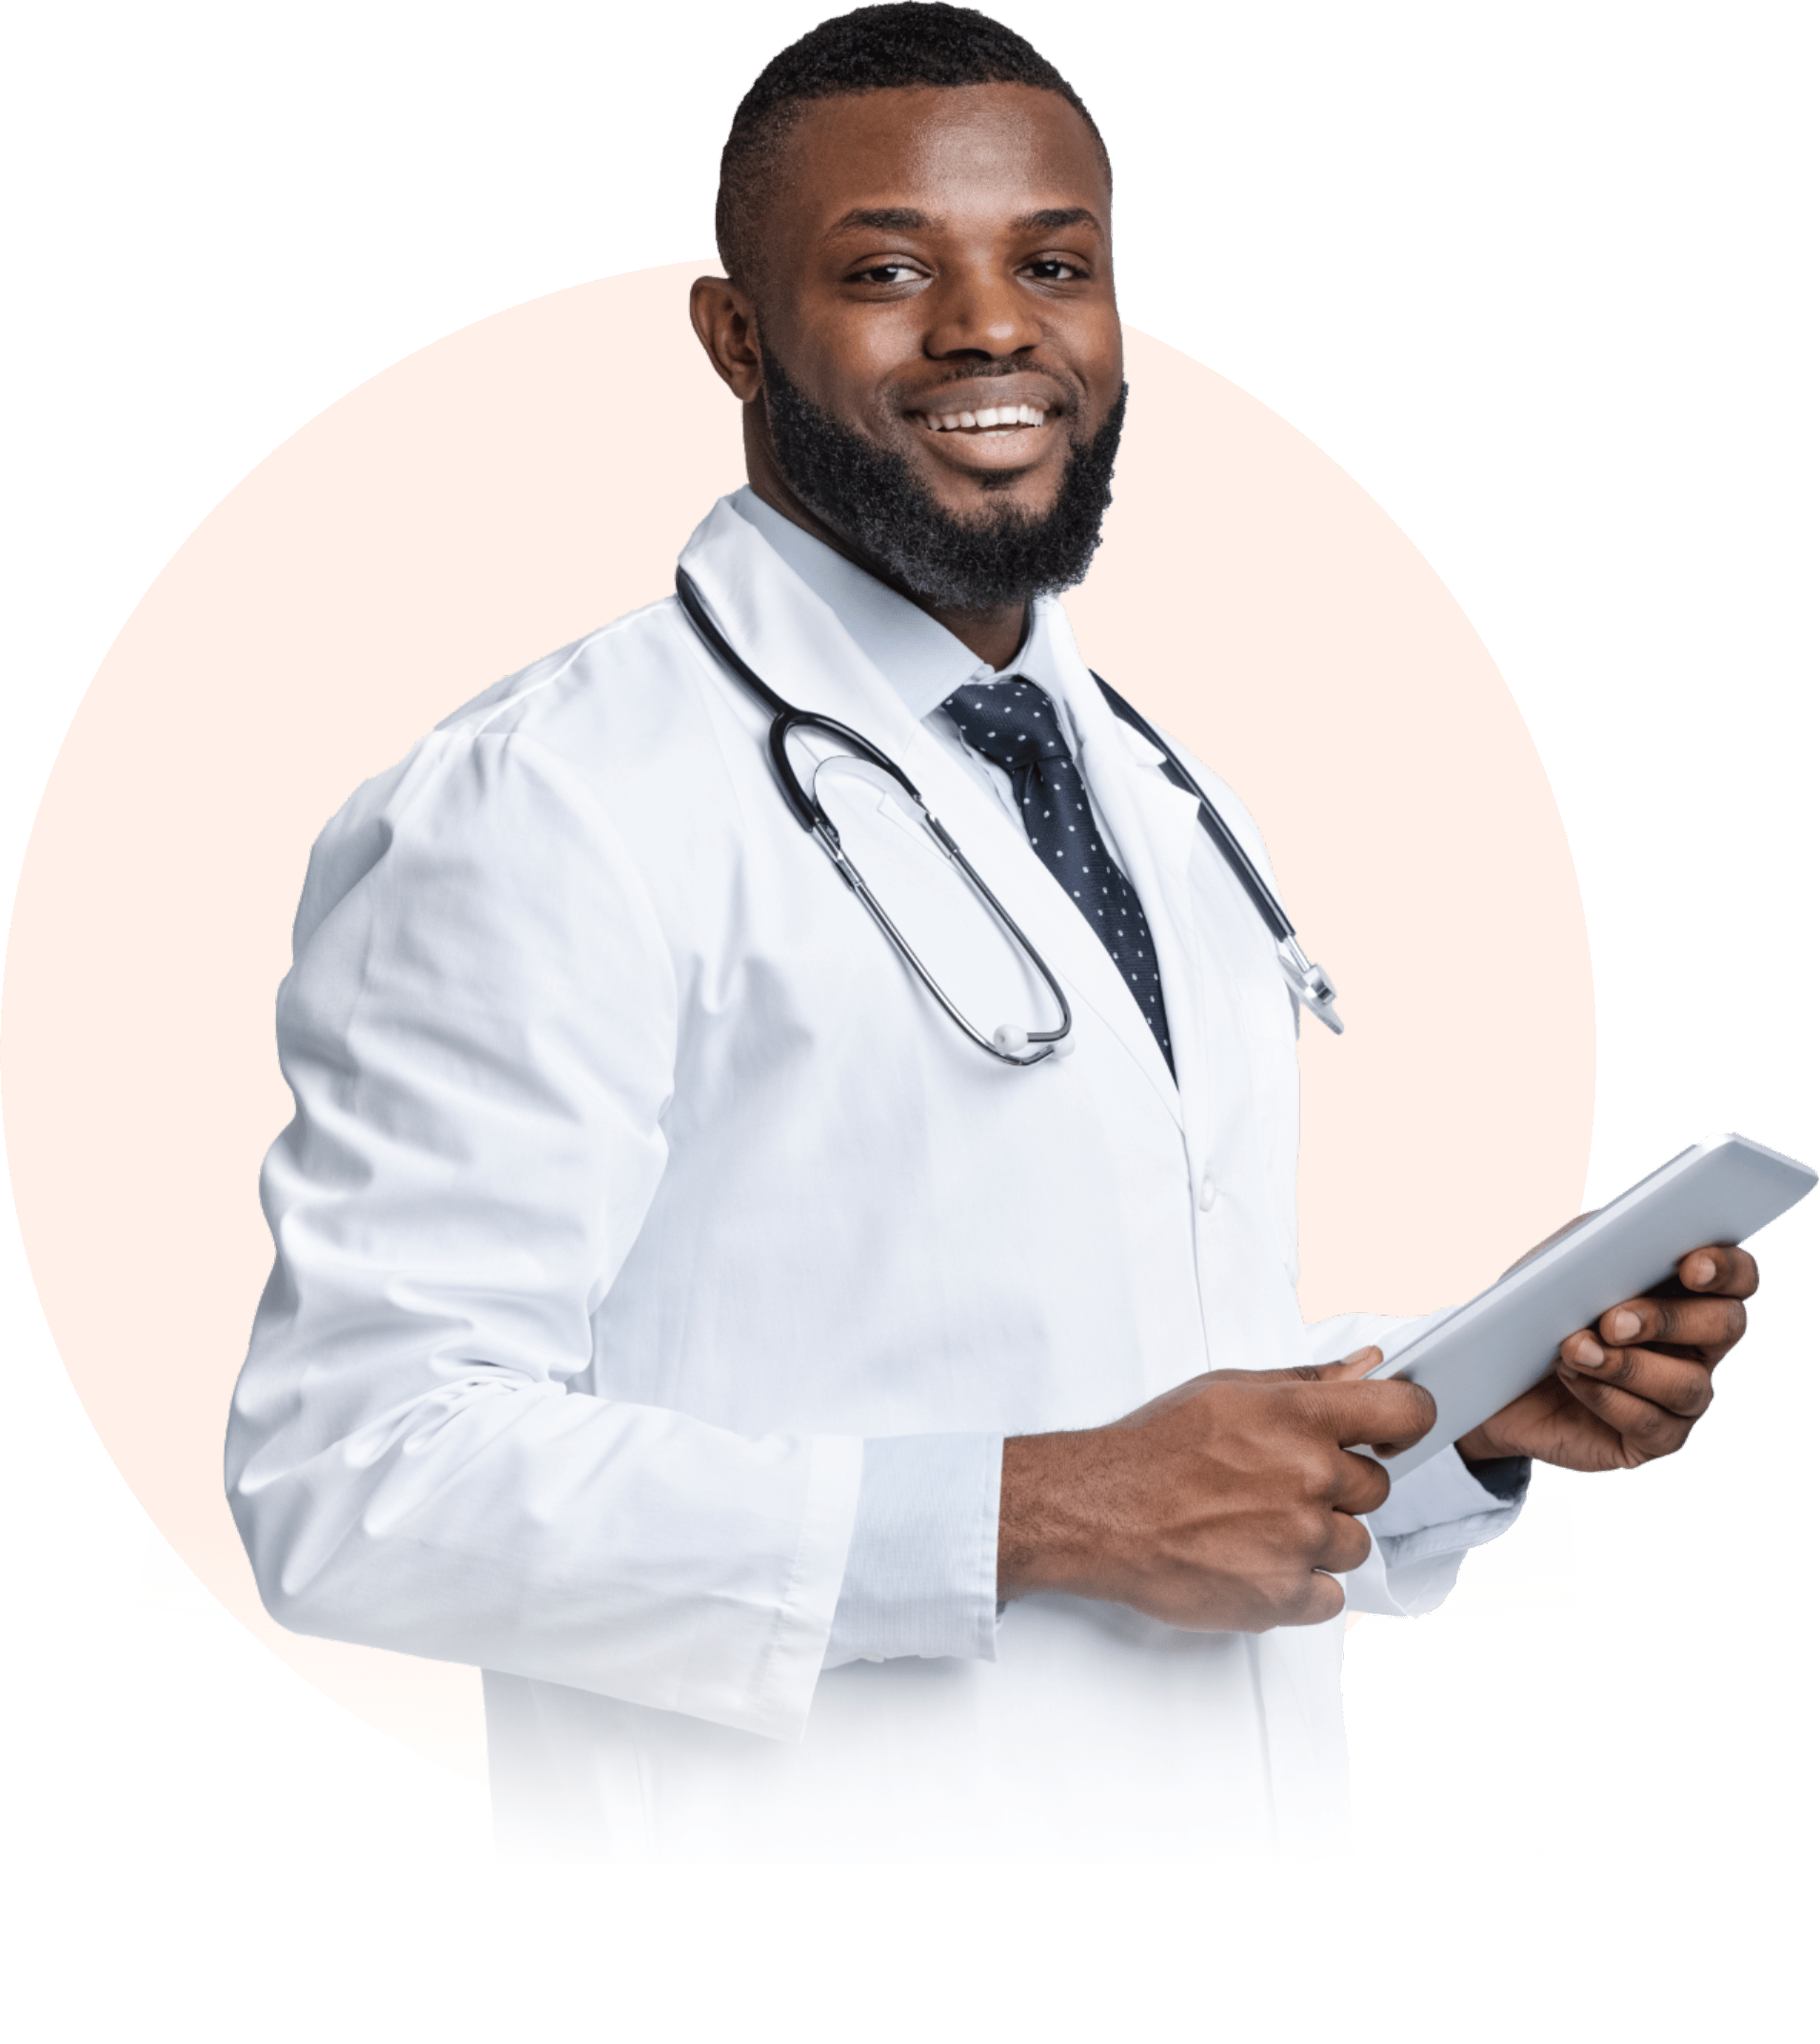 Jovive is 100% owned and led by Doctors